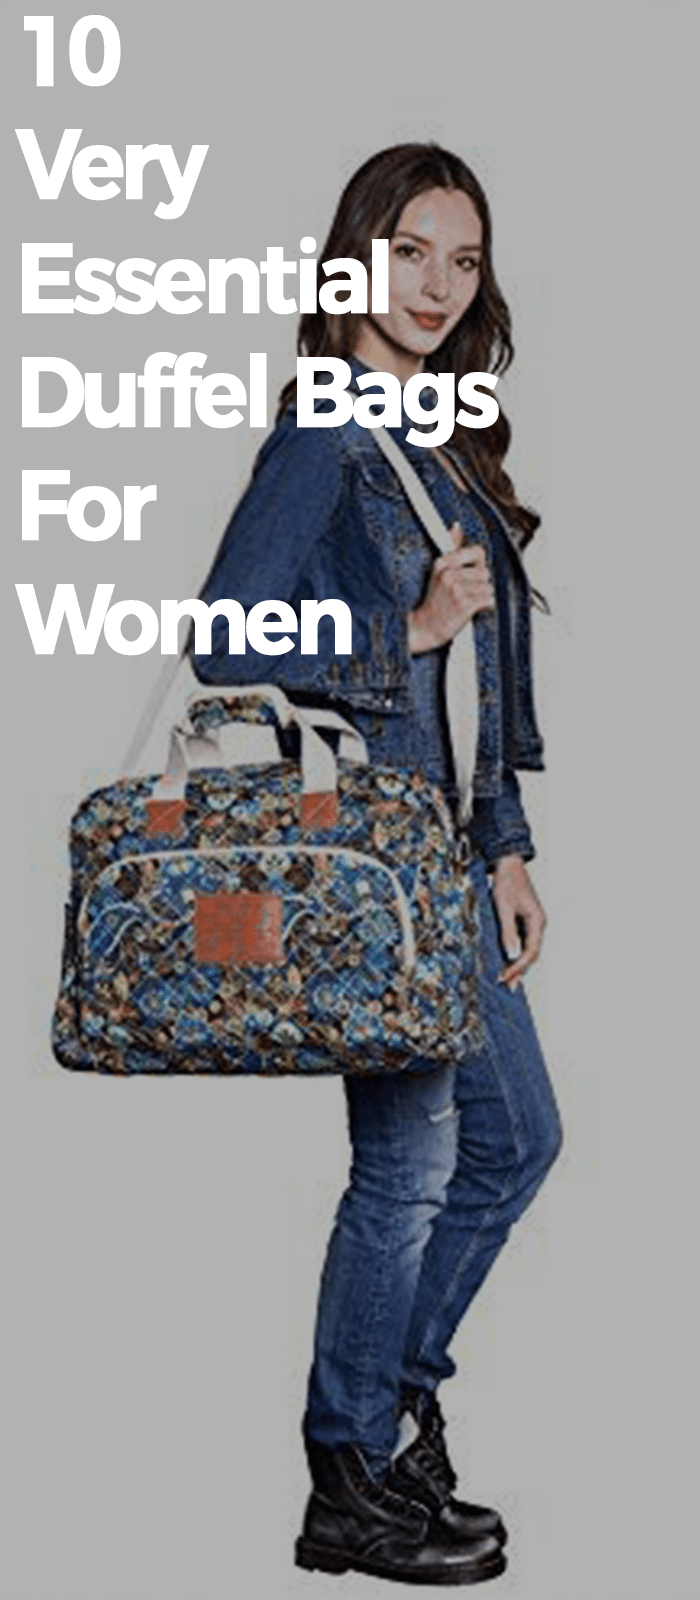 10 Very Essential Duffel Bags For Women